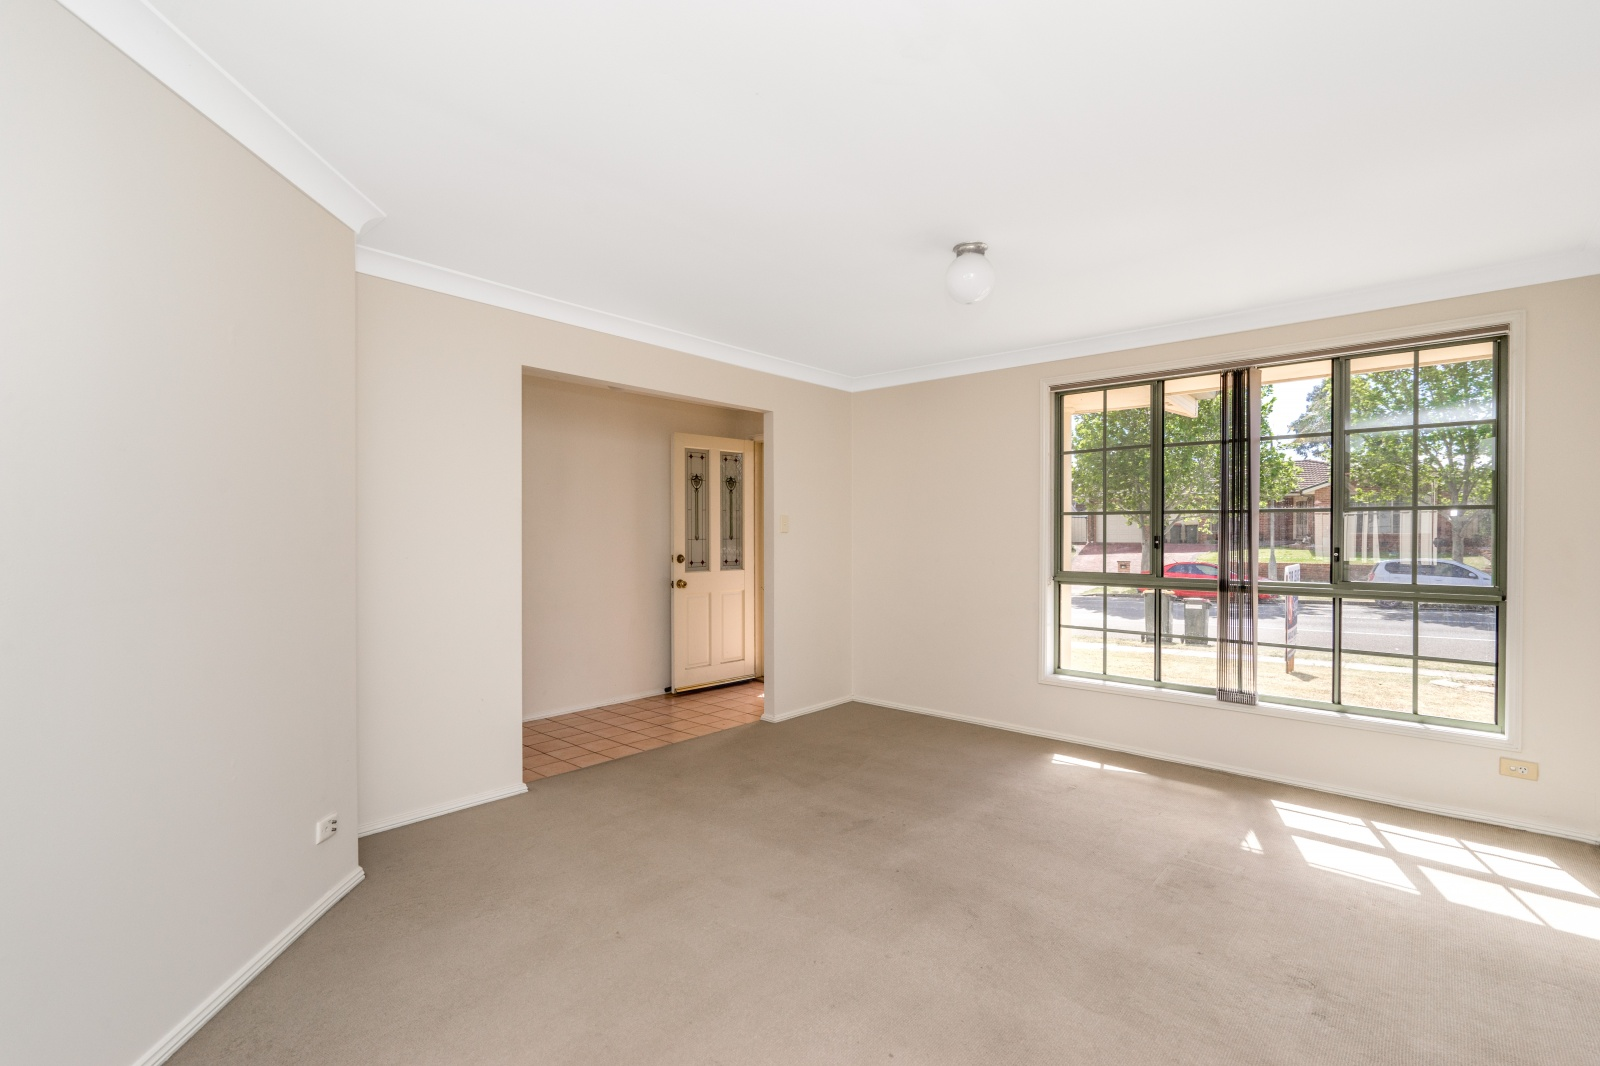 38 Currans Hill Drive,Currans Hill,NSW,3 Bedrooms Bedrooms,2 BathroomsBathrooms,House,Currans Hill Drive,1291